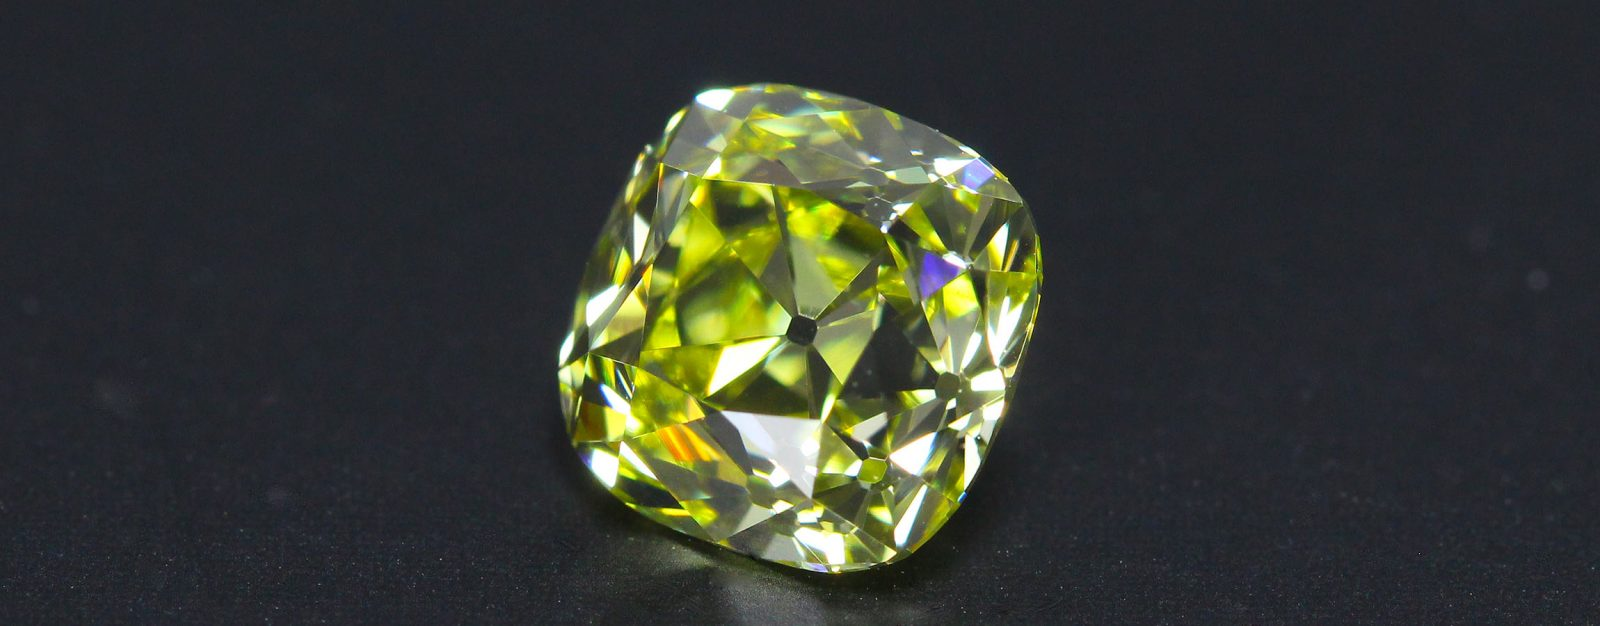 Fancy Intense Yellow Old Mine cut Diamond